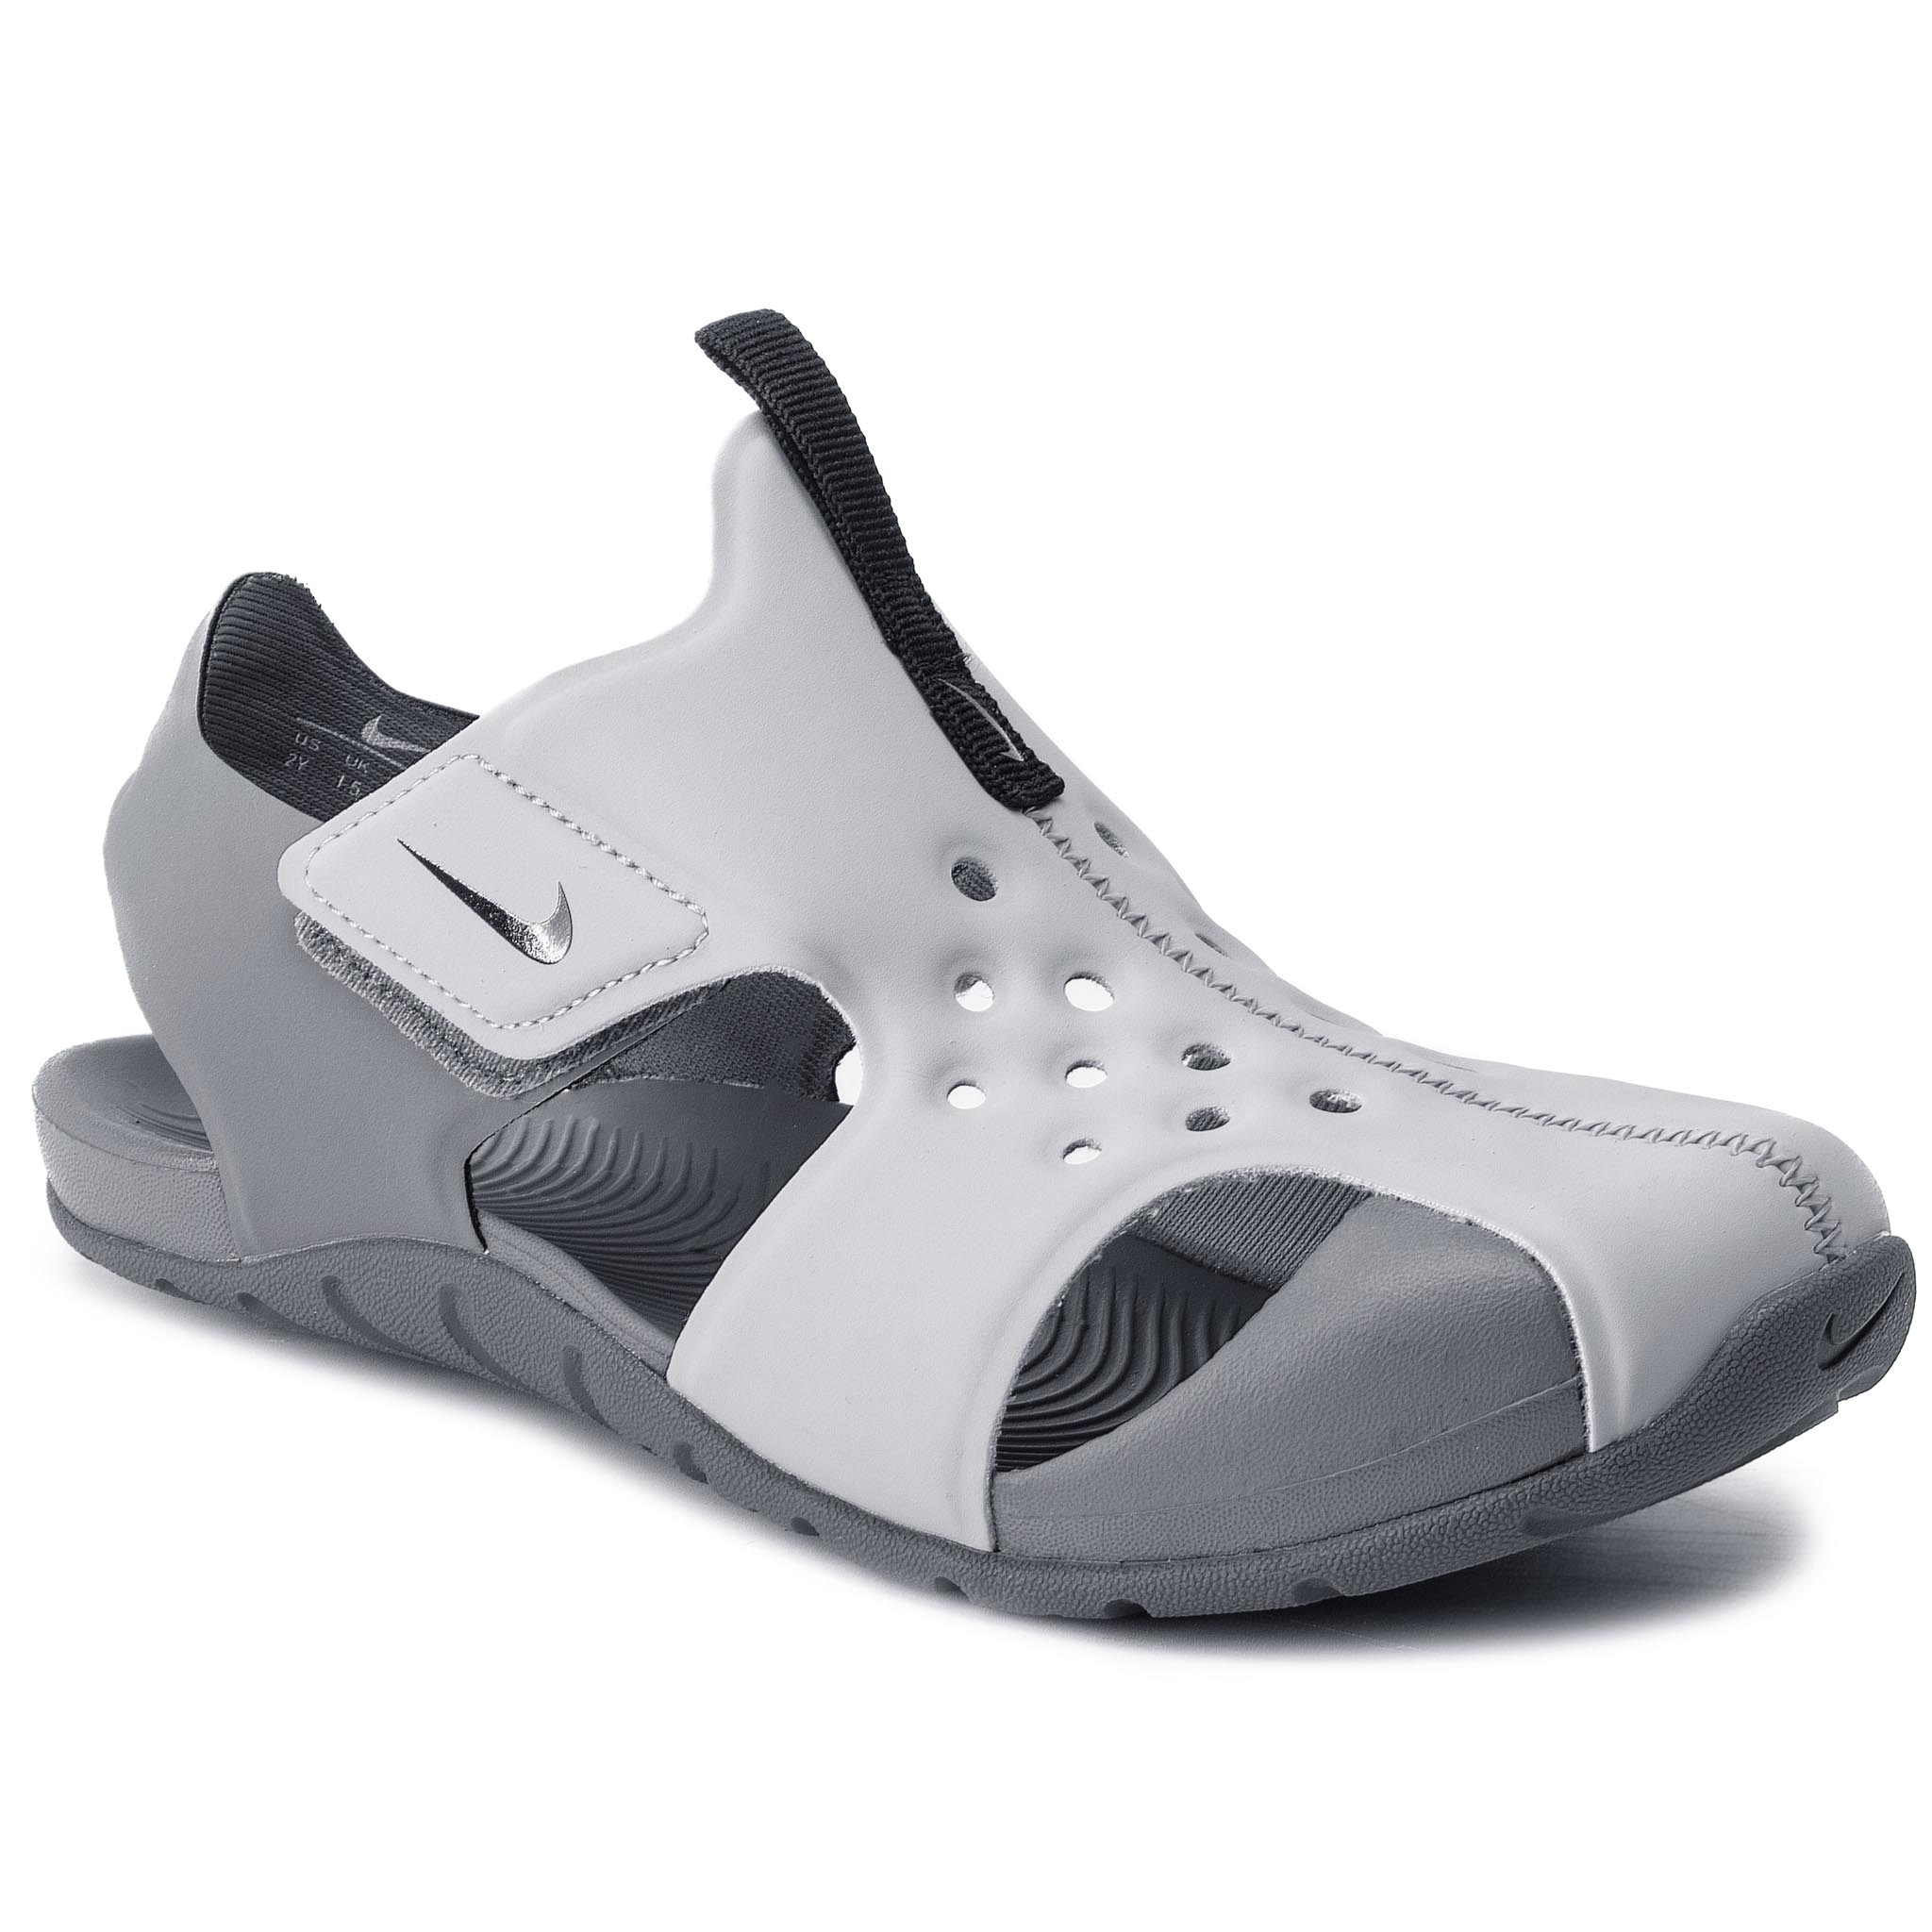 Sandale NIKE - Sunray Protect 2 (PS) 943826 004 Wolf Grey/Black